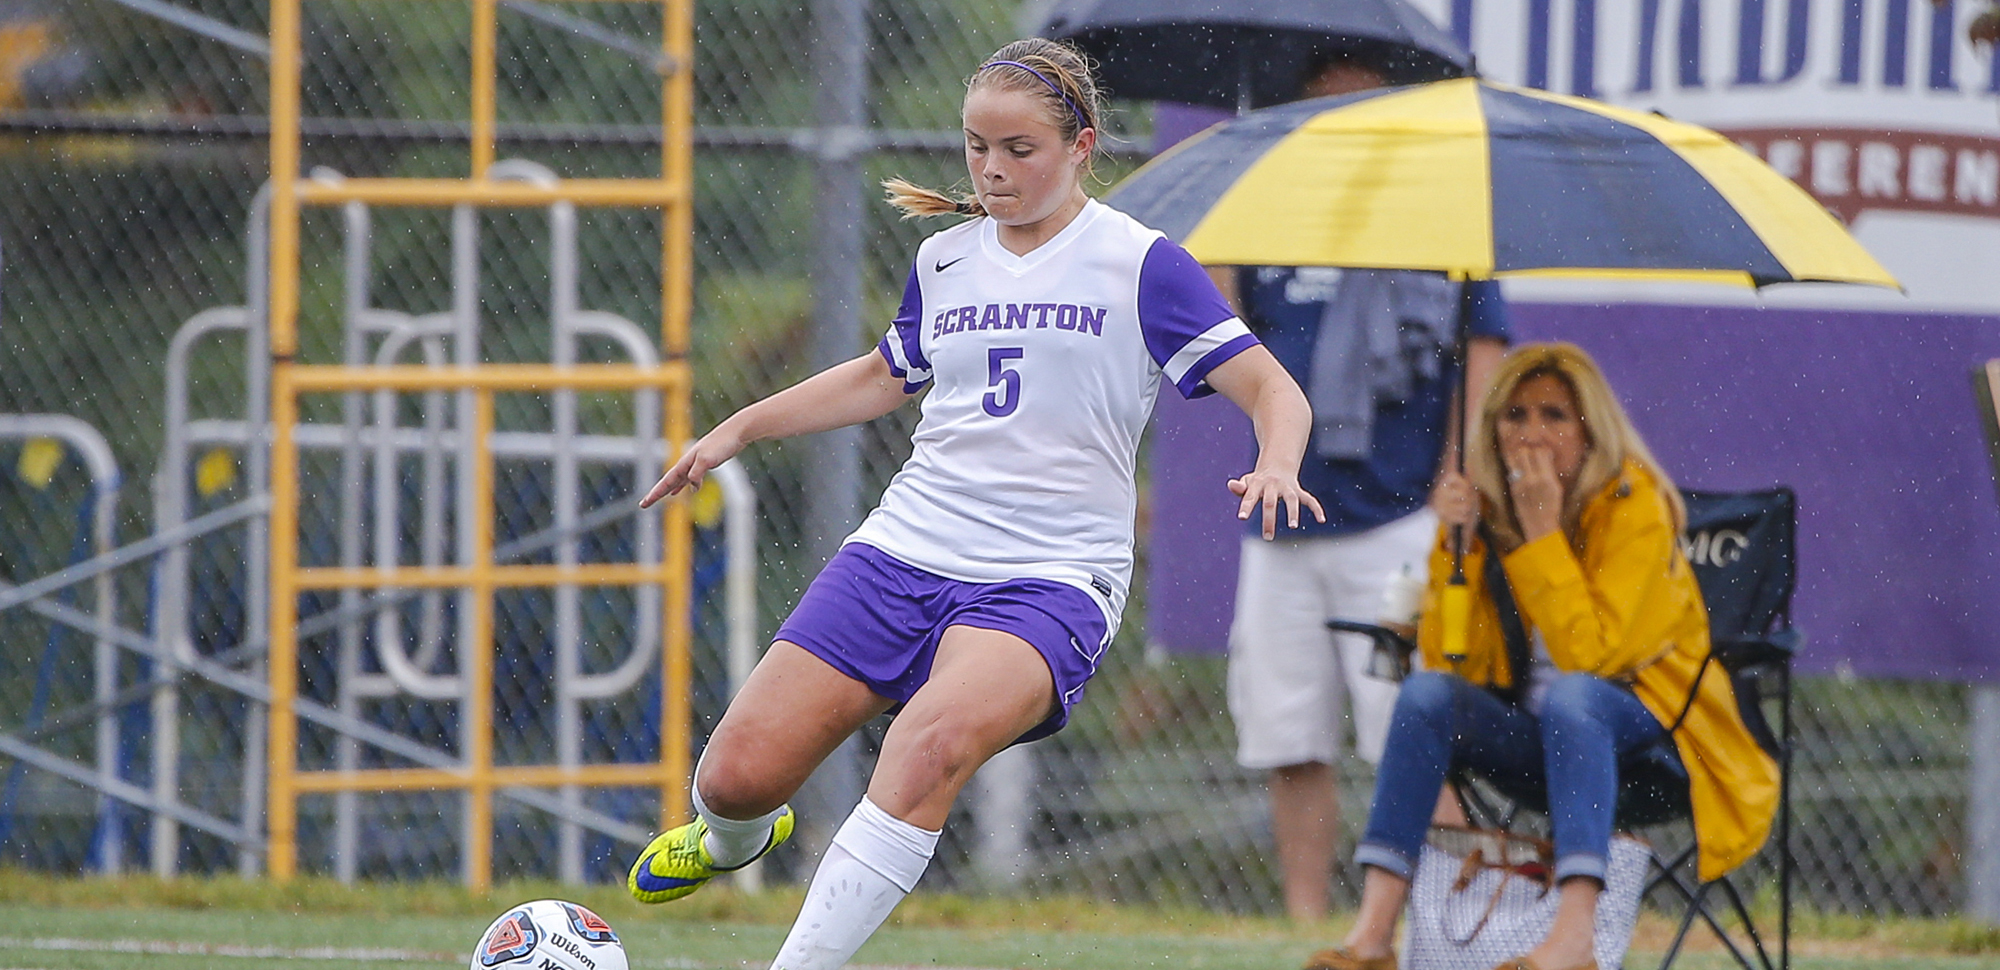 Junior Hannah DeMars has been named The University of Scranton Athlete of the Week for the first time in her career.